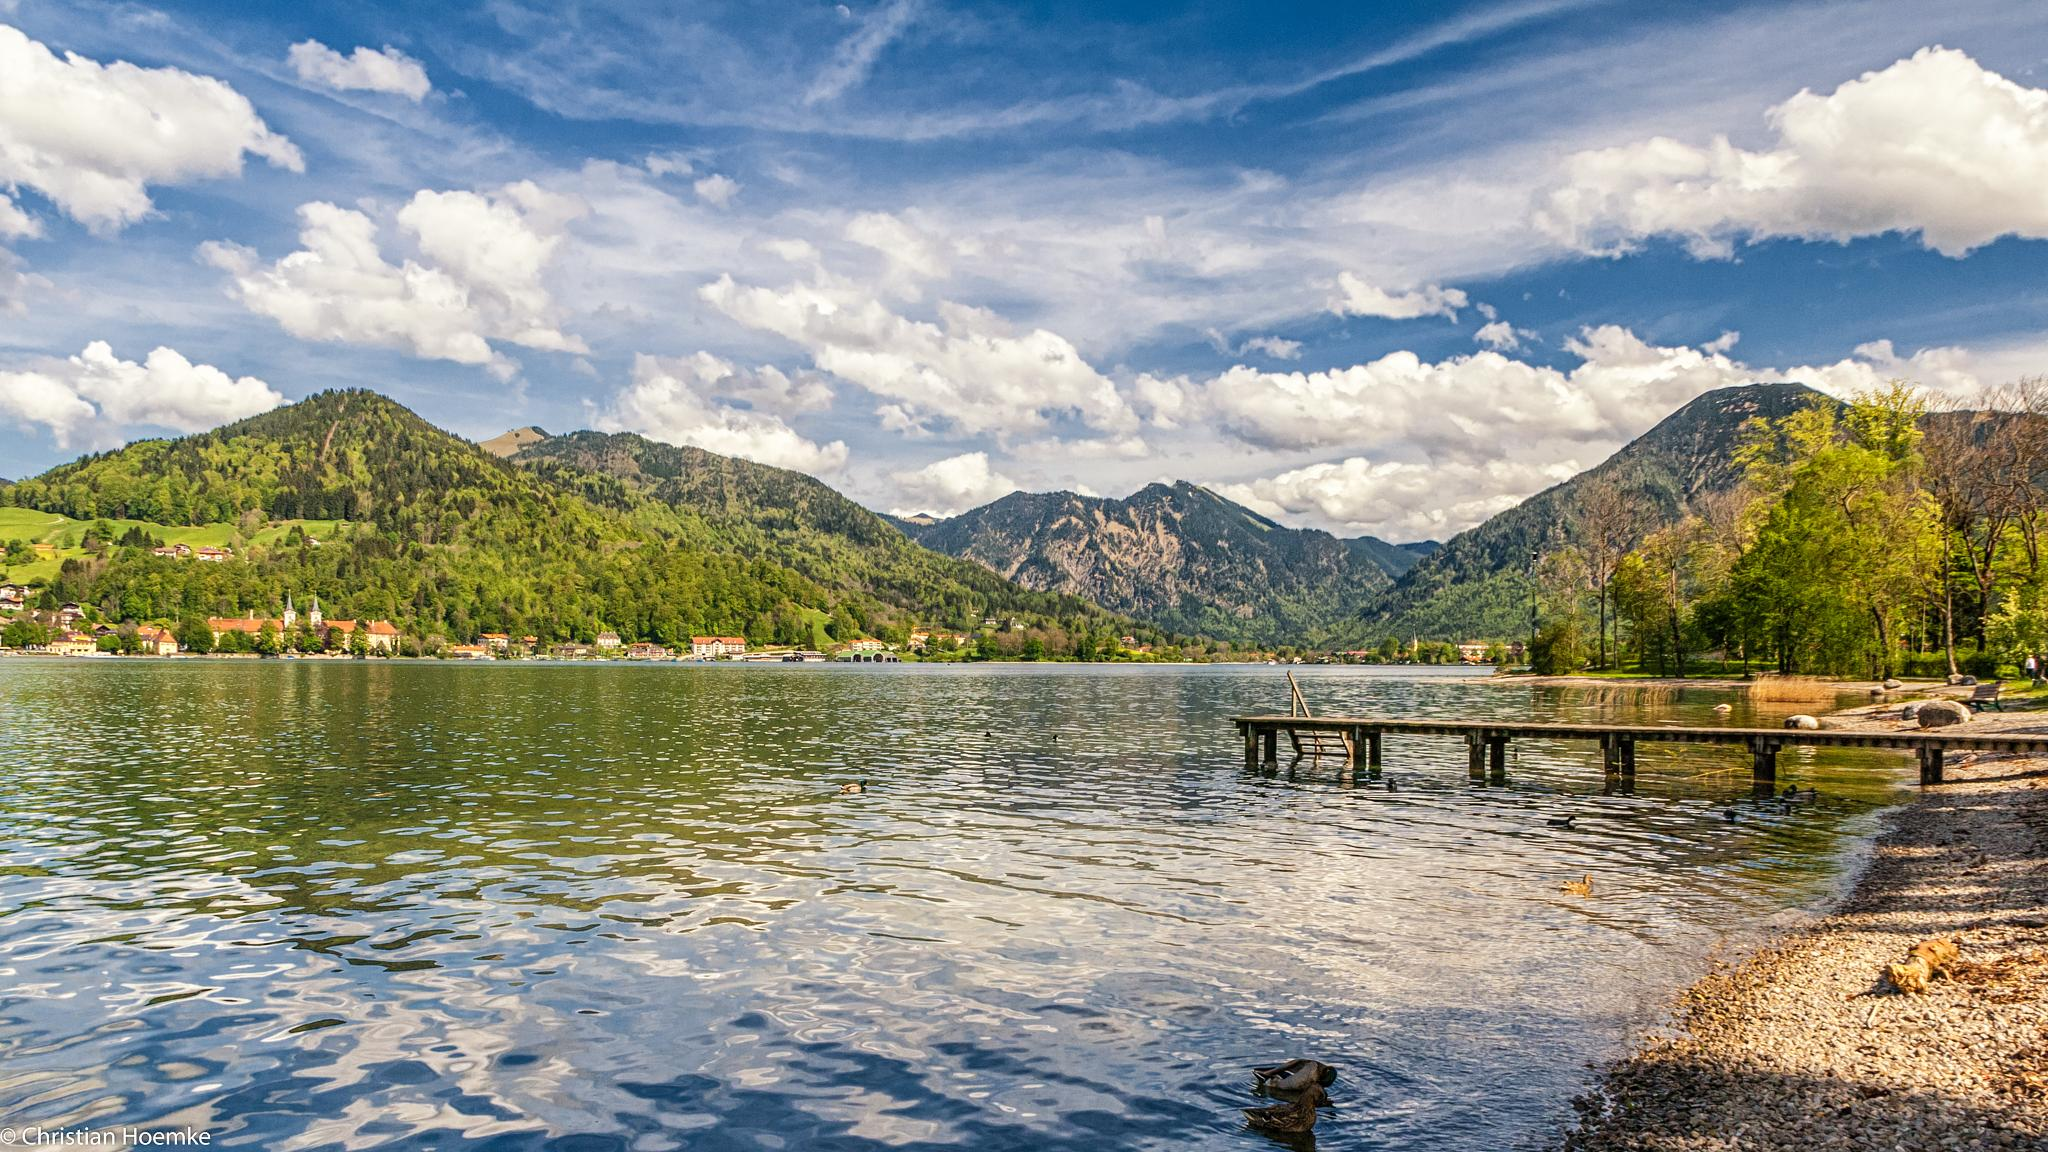 Photo in Landscape #germany #bavaria #alps #tegernsee #lake #mountains #water #sky #clouds #ducks #nature #landscape